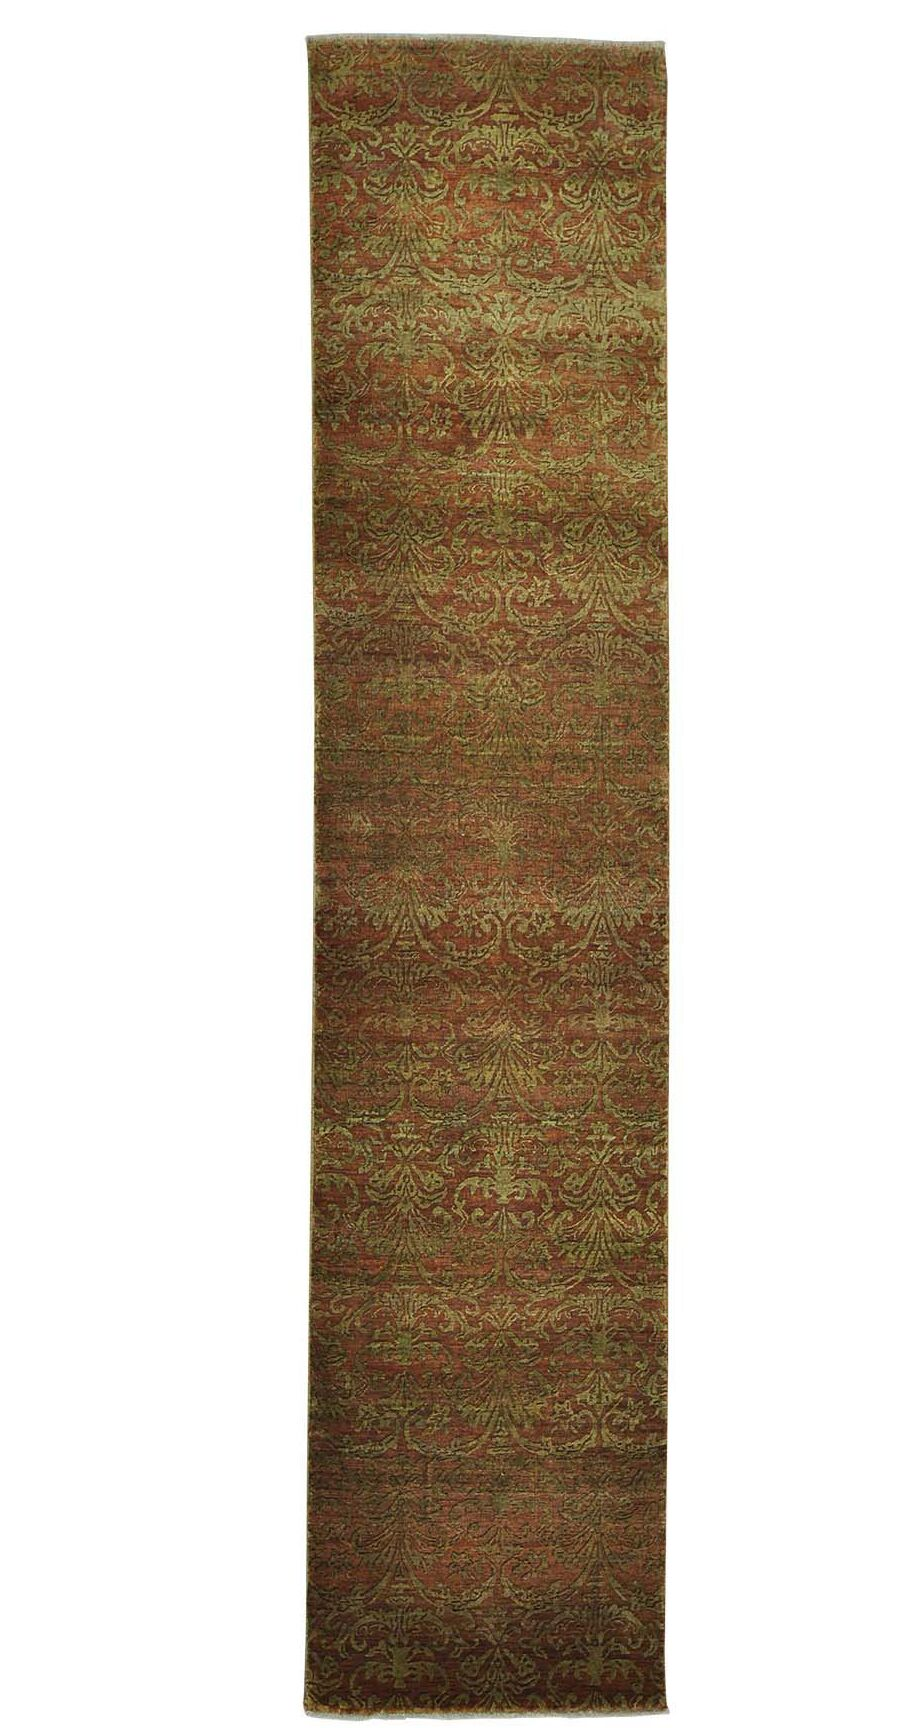 Damask Tone on Tone Hand-Knotted Brown Area Rug